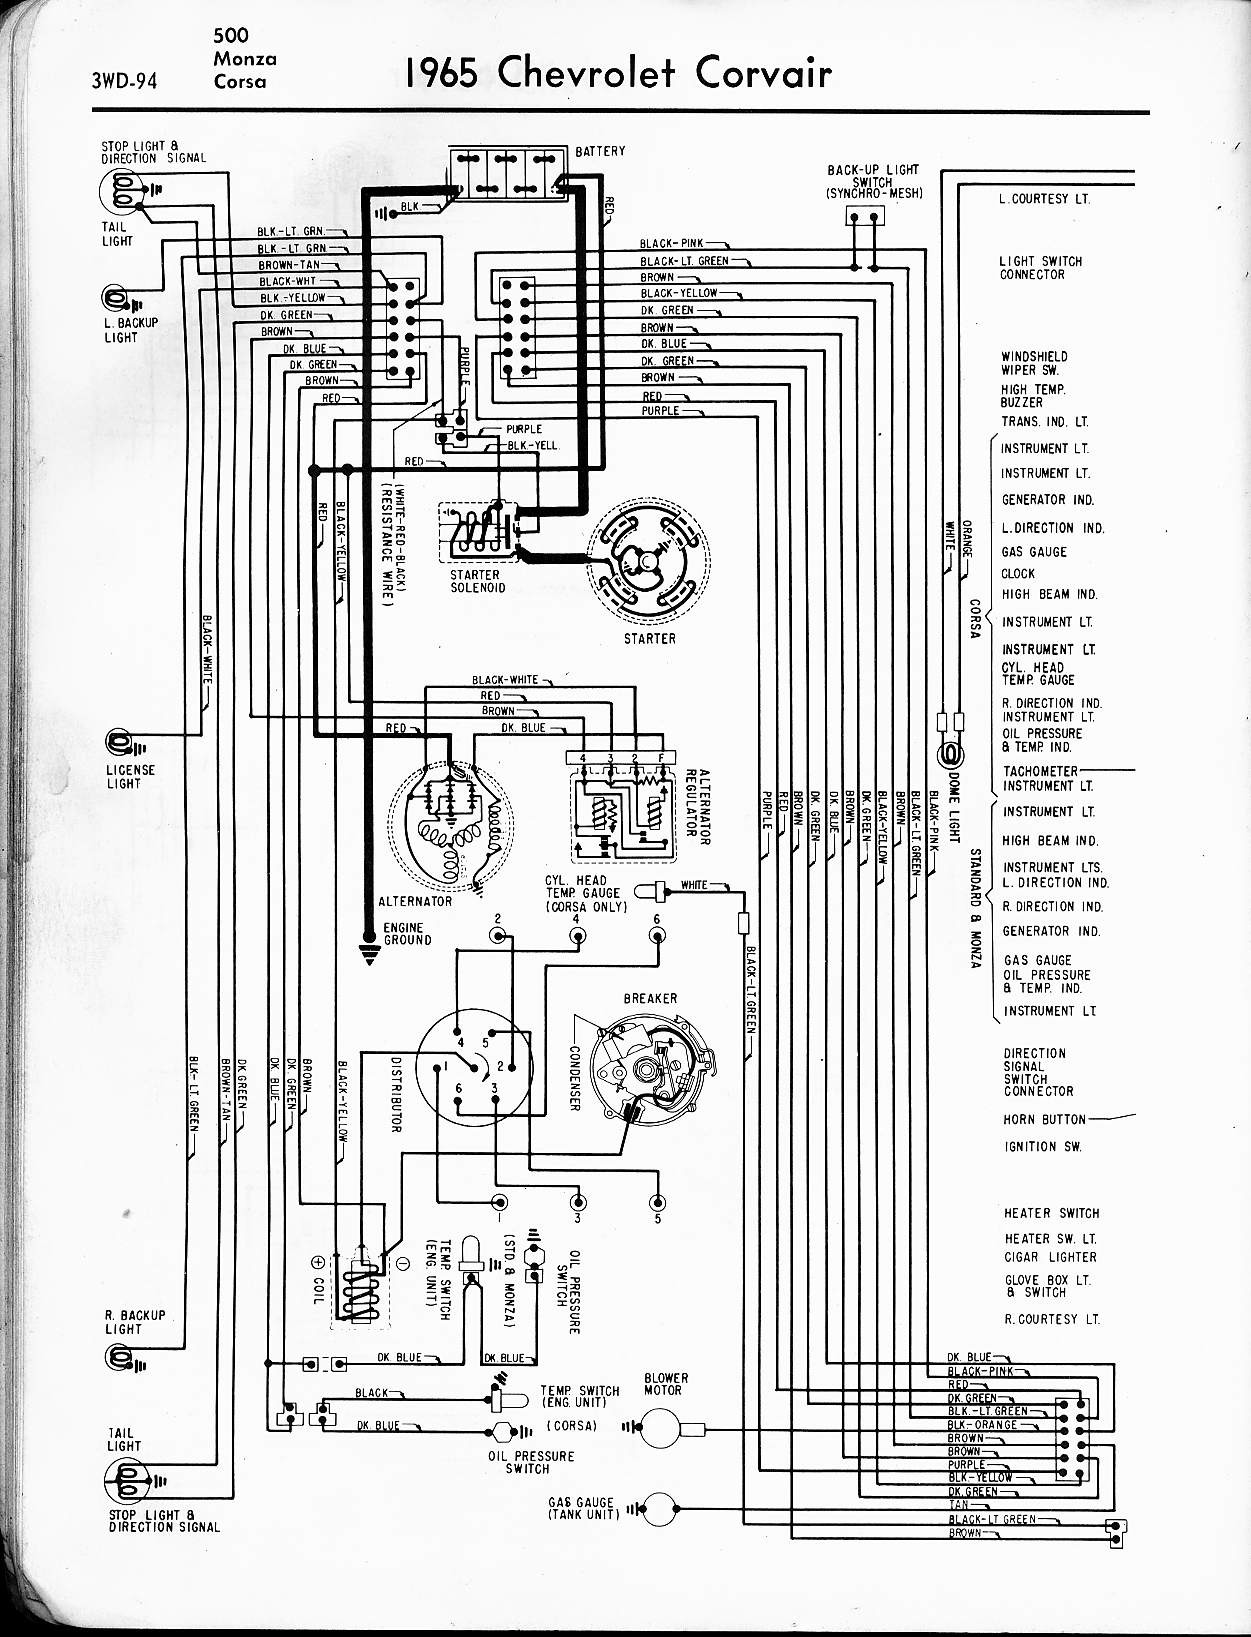 1964 corvair wiring diagram